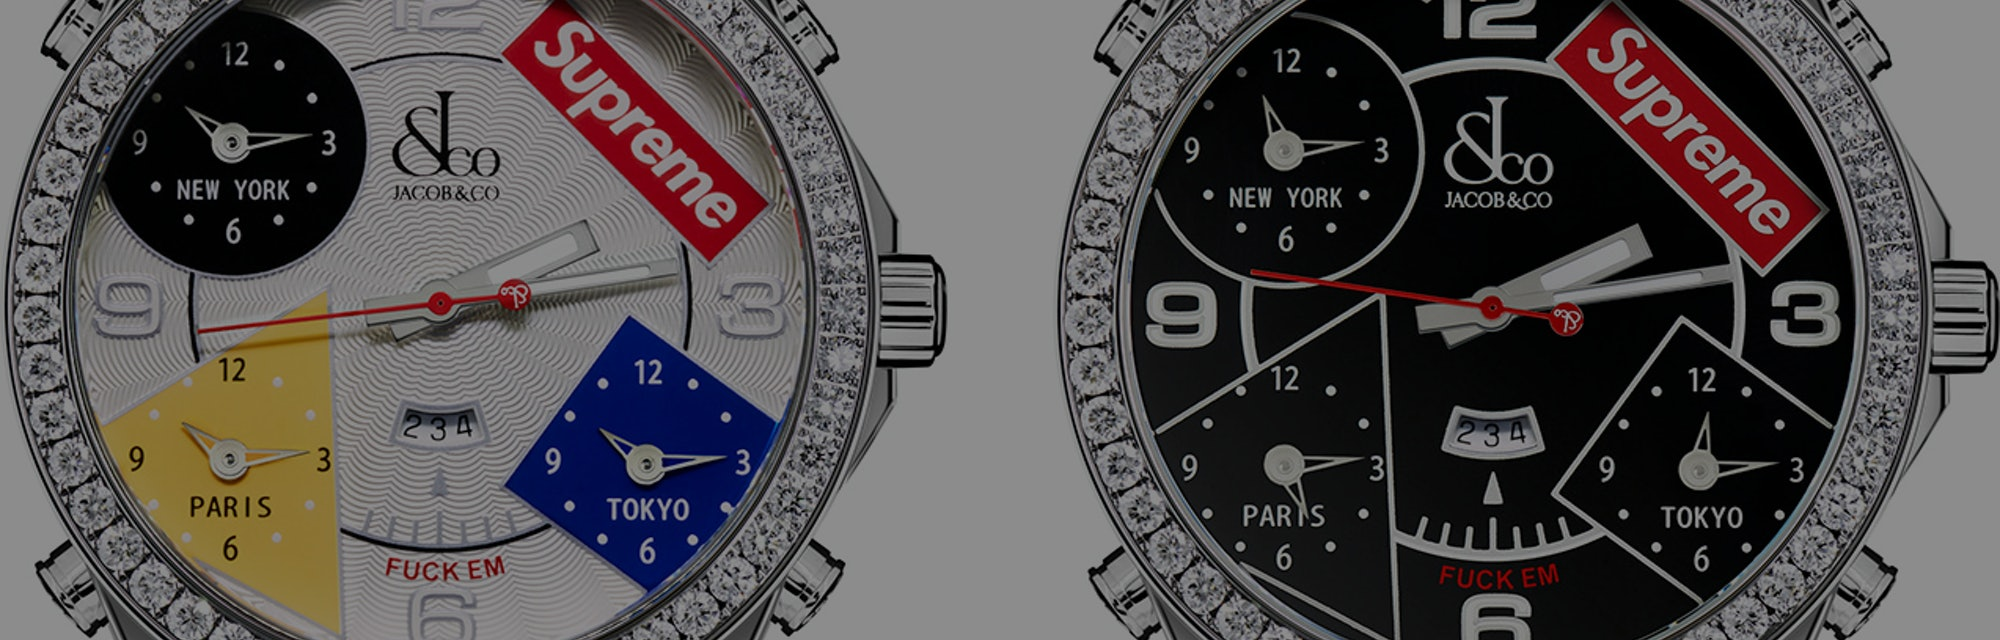 Supreme Jacob & Co. Diamond Watch